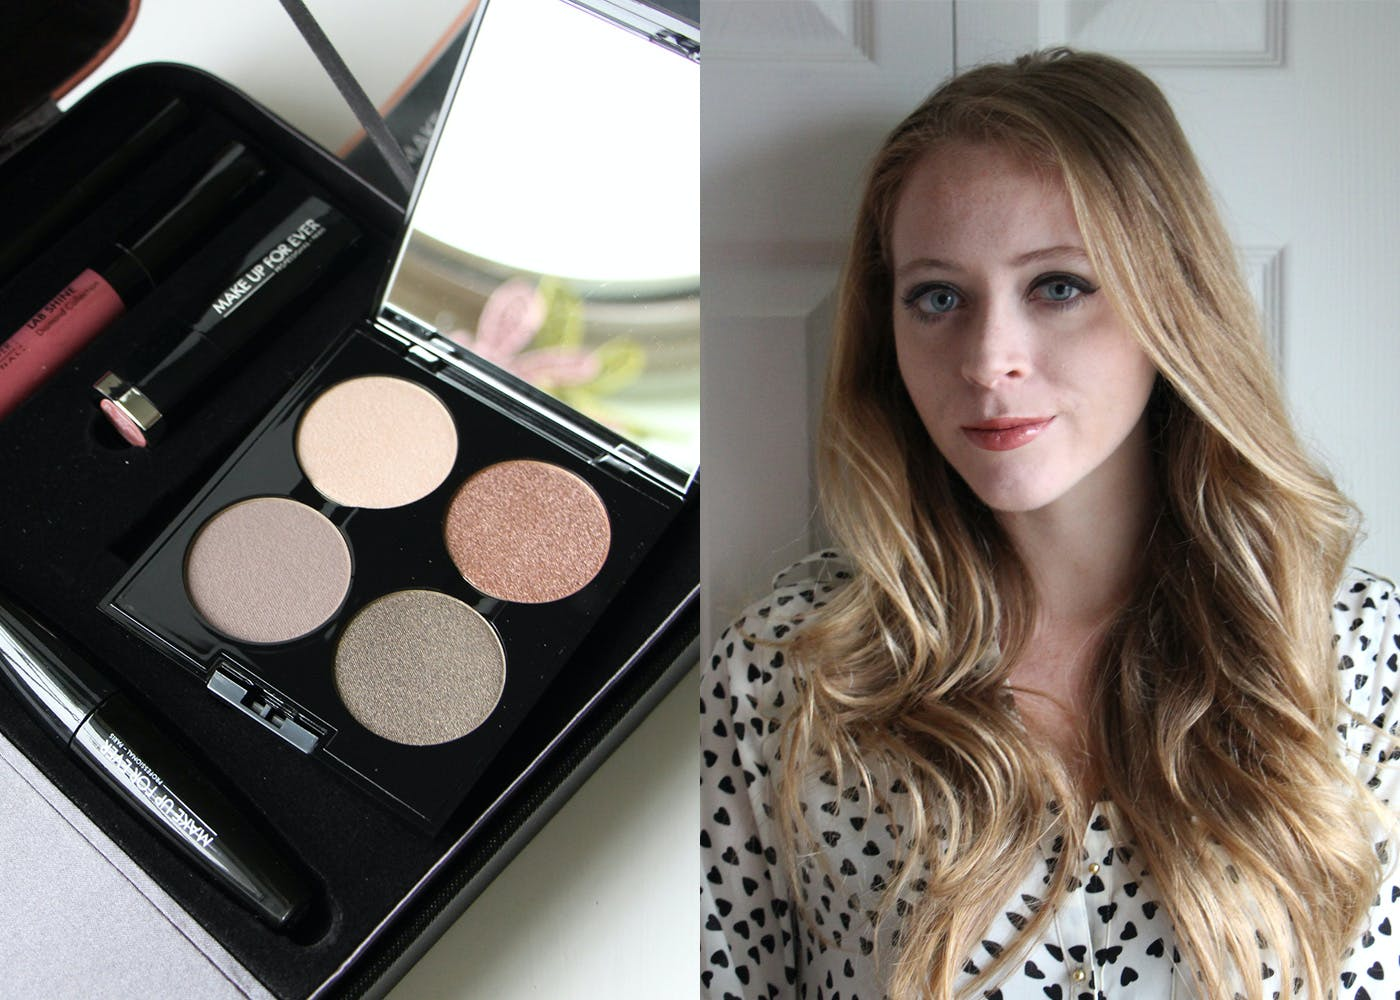 Make Up For Ever Fifty Shades of Grey Collection review